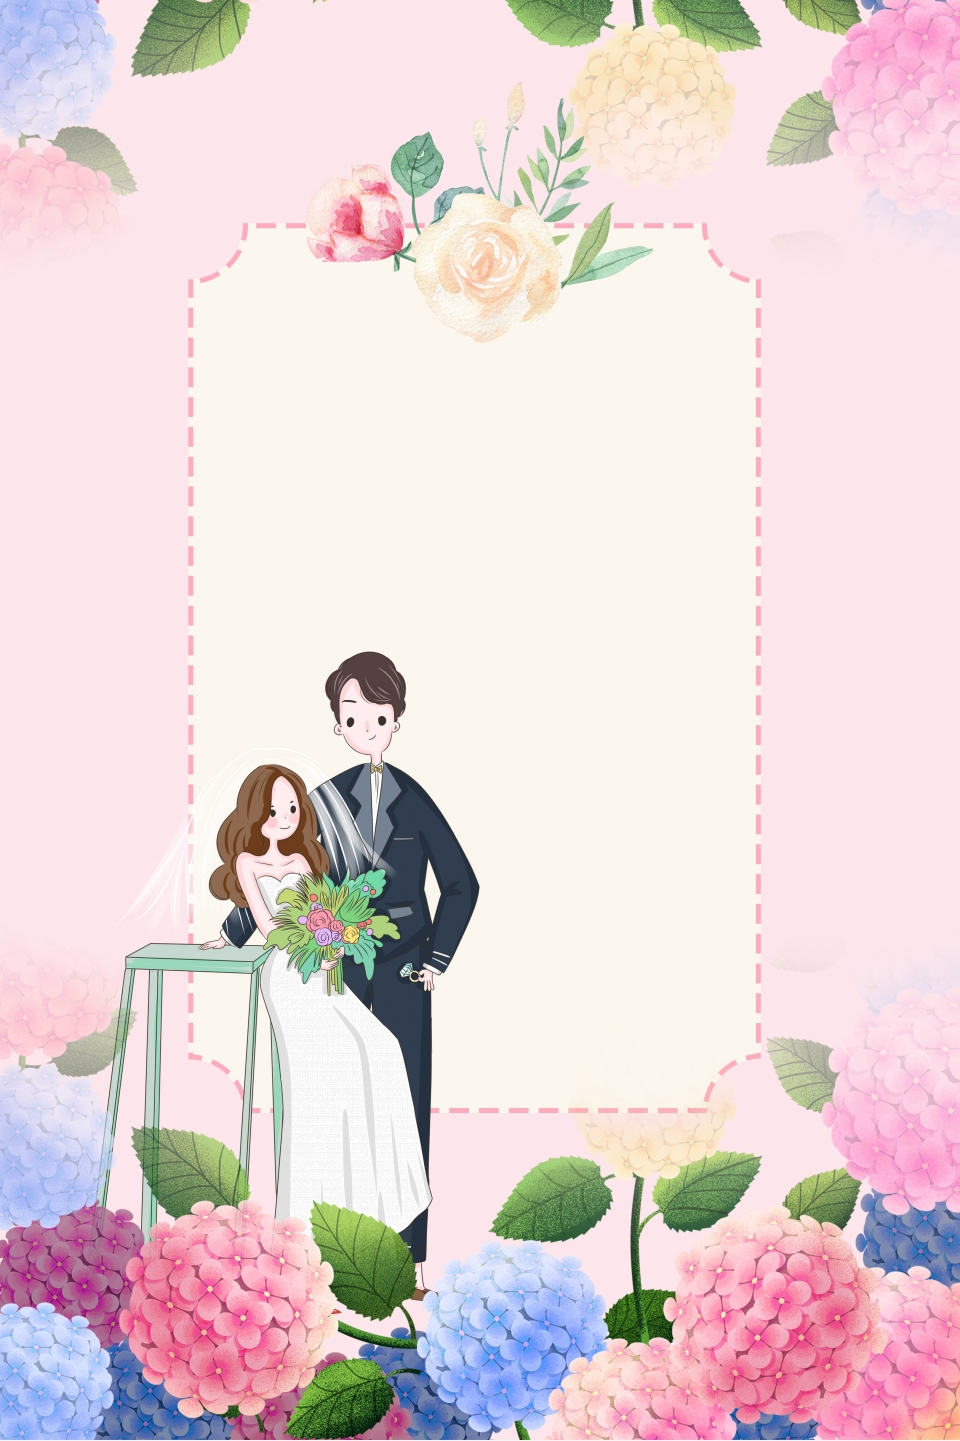 Romantic Floral Wedding Invitation Sign In The Office Poster